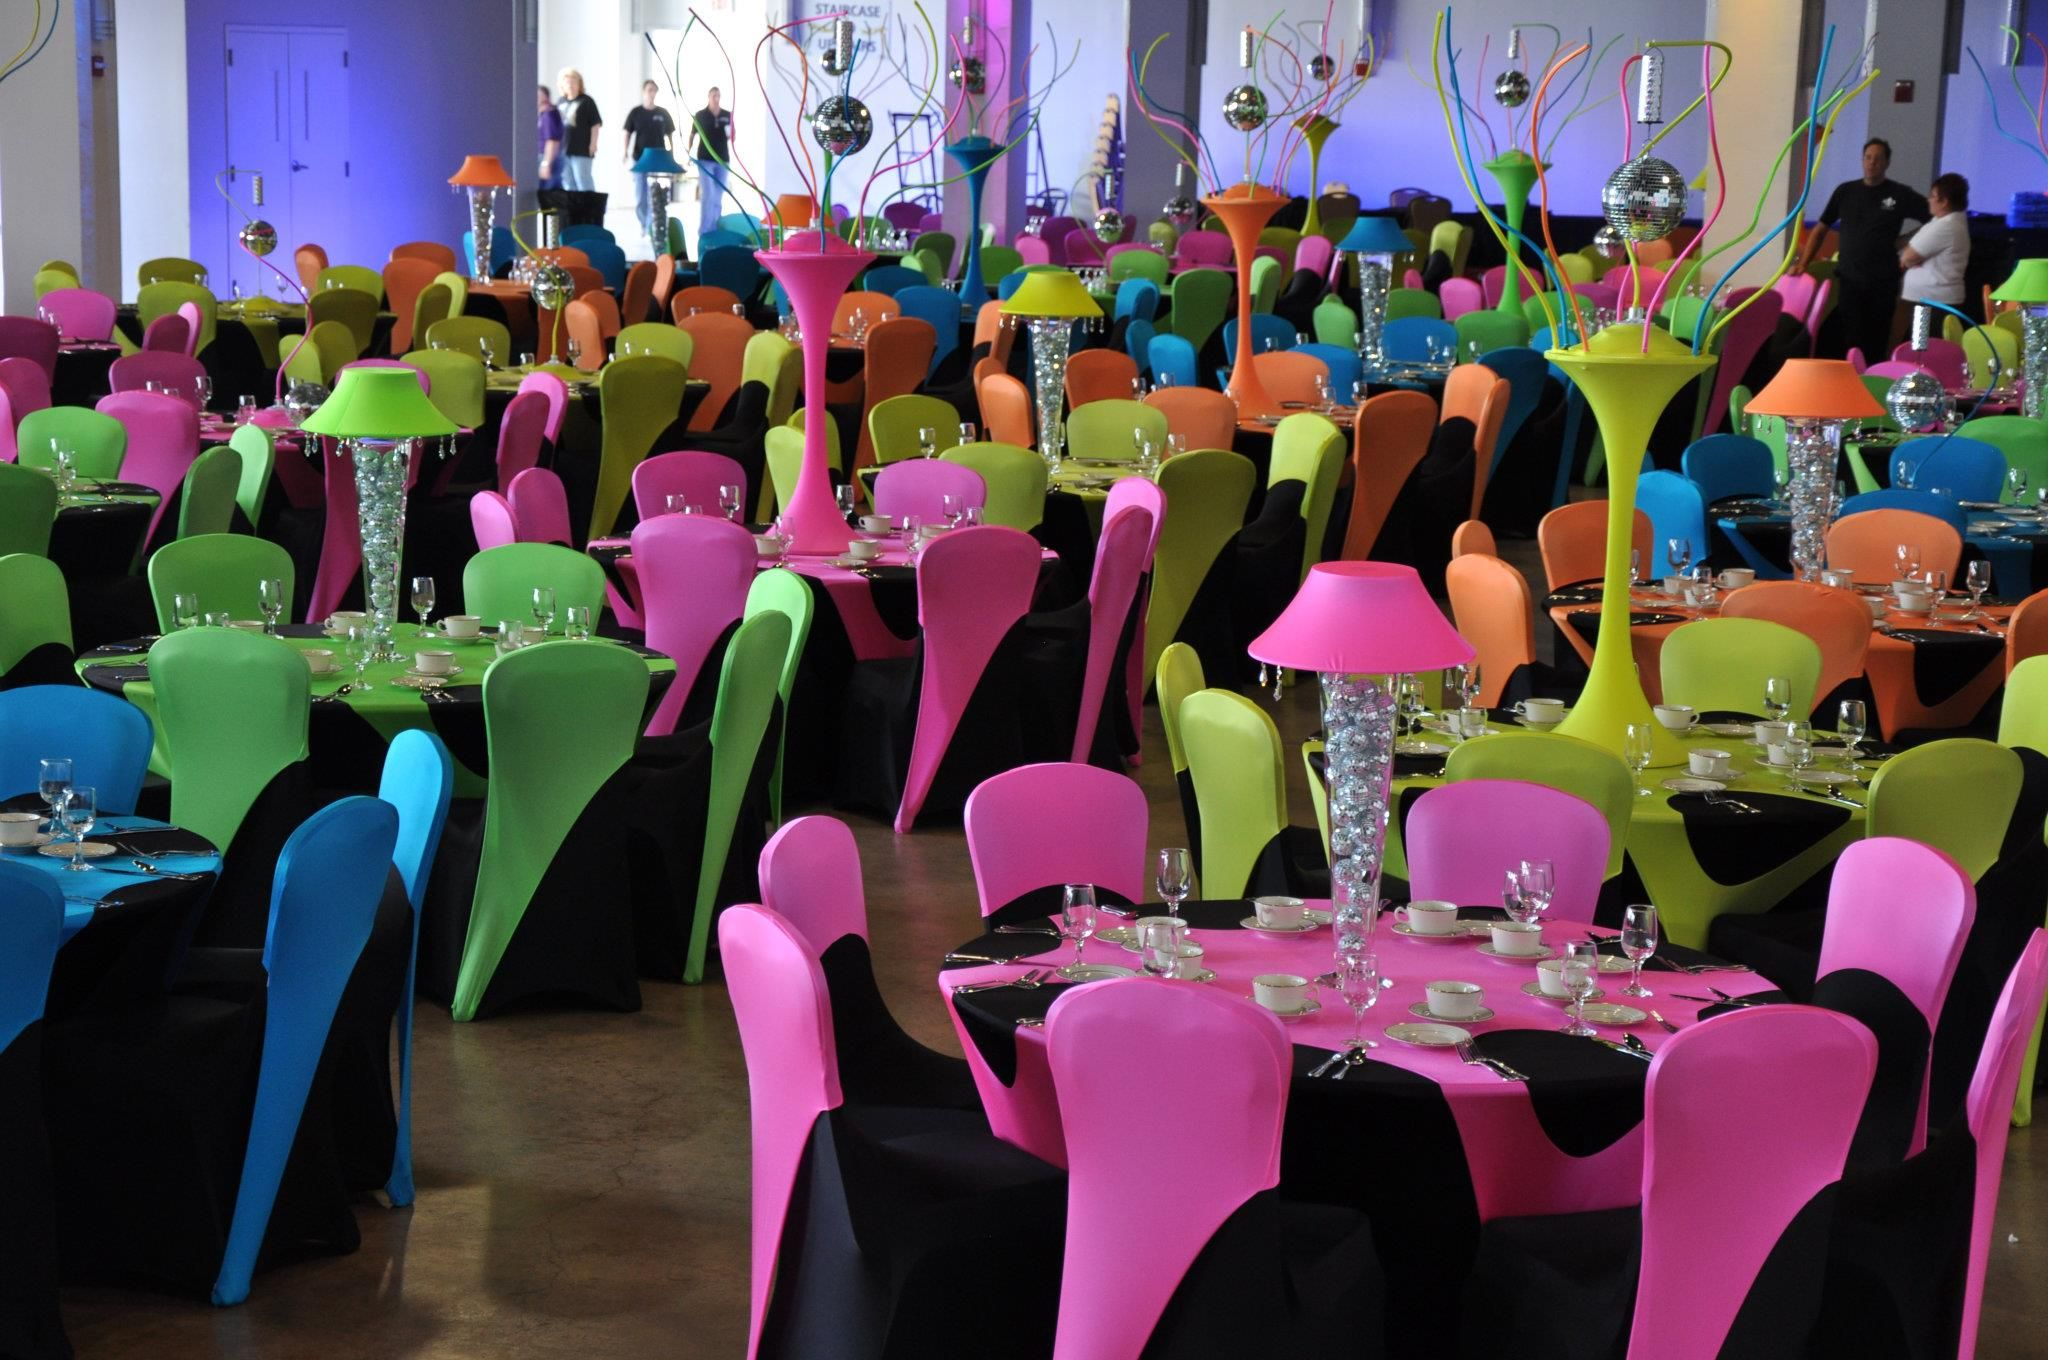 Stupendous Unique Neons Party Chairs Chair Covers Stretch Chair Covers Caraccident5 Cool Chair Designs And Ideas Caraccident5Info